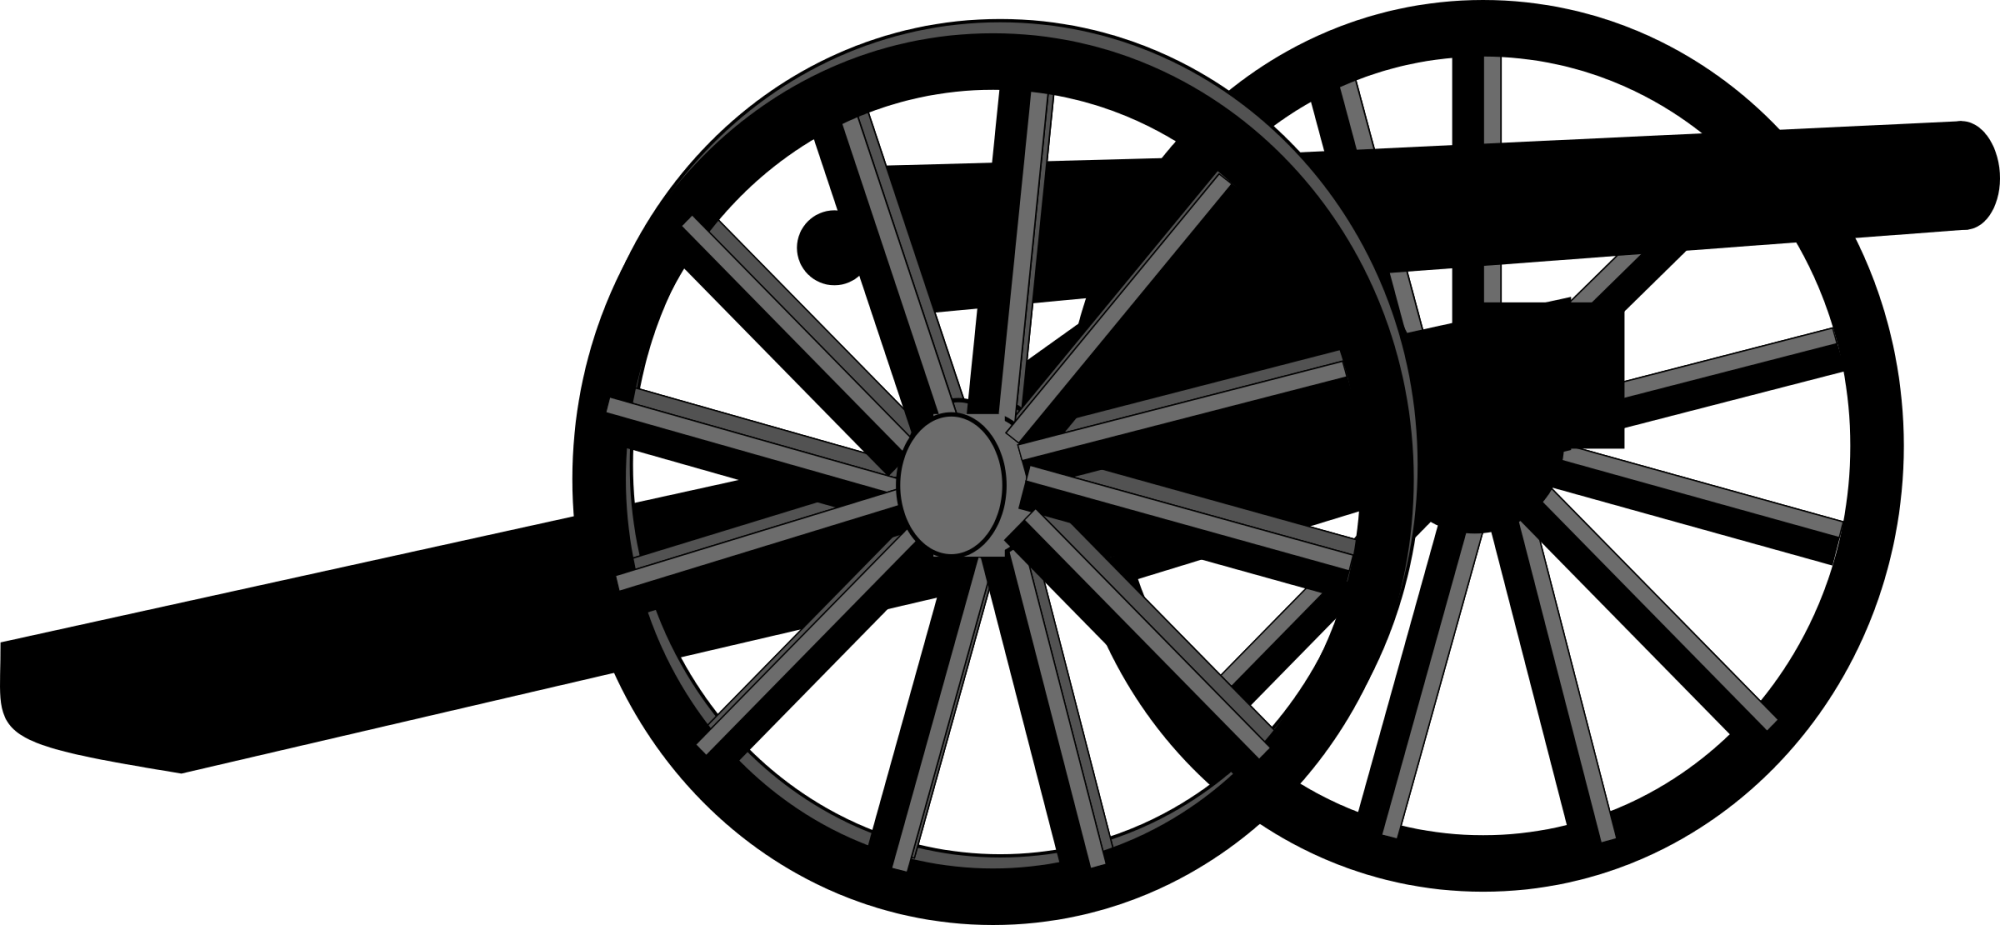 hight resolution of free photos vector images civil war cannon vector clipart